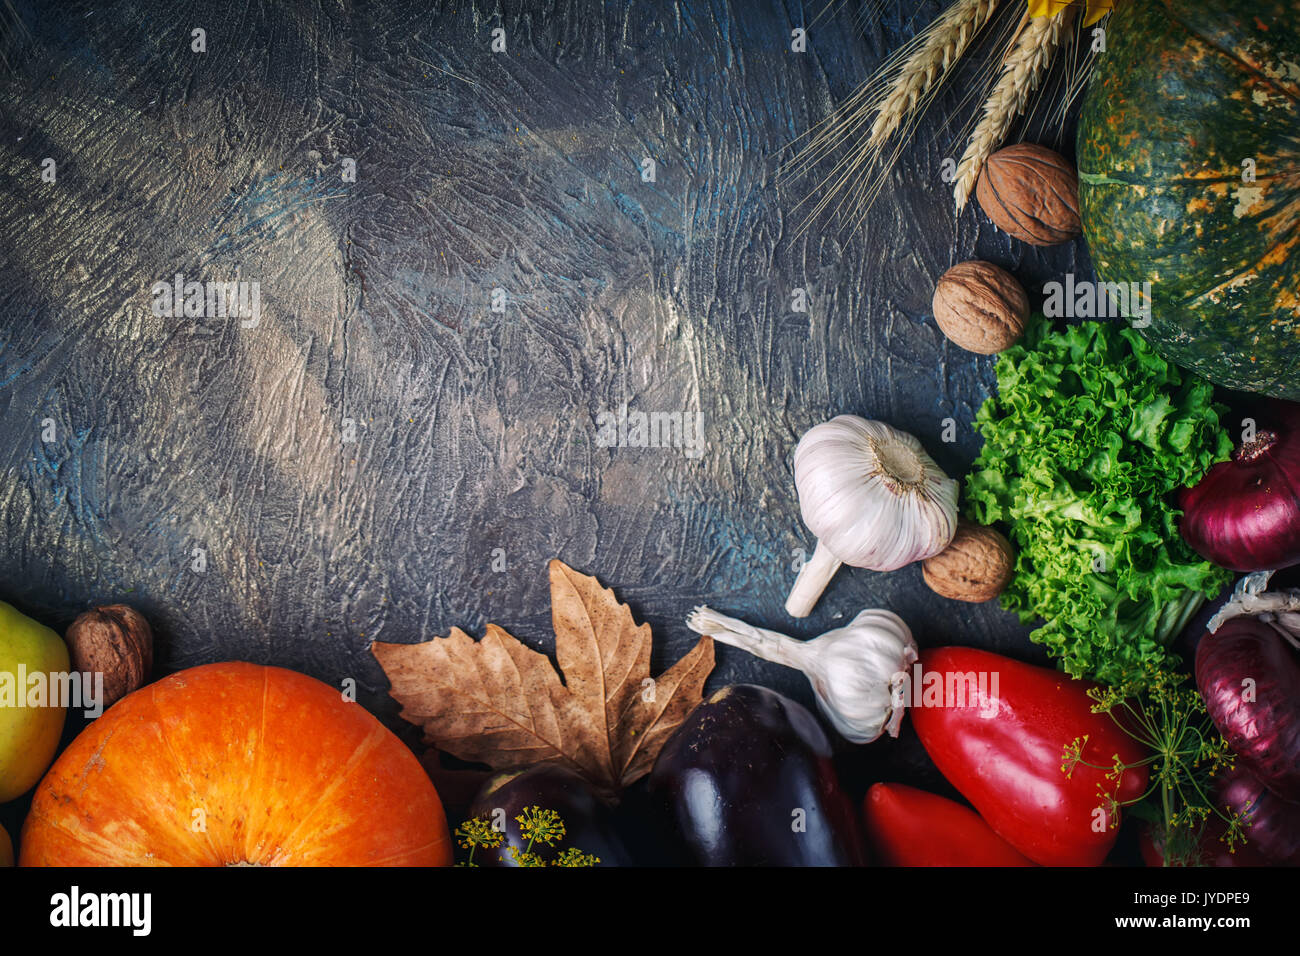 The table, decorated with vegetables and fruits. Harvest Festival,Happy Thanksgiving. - Stock Image